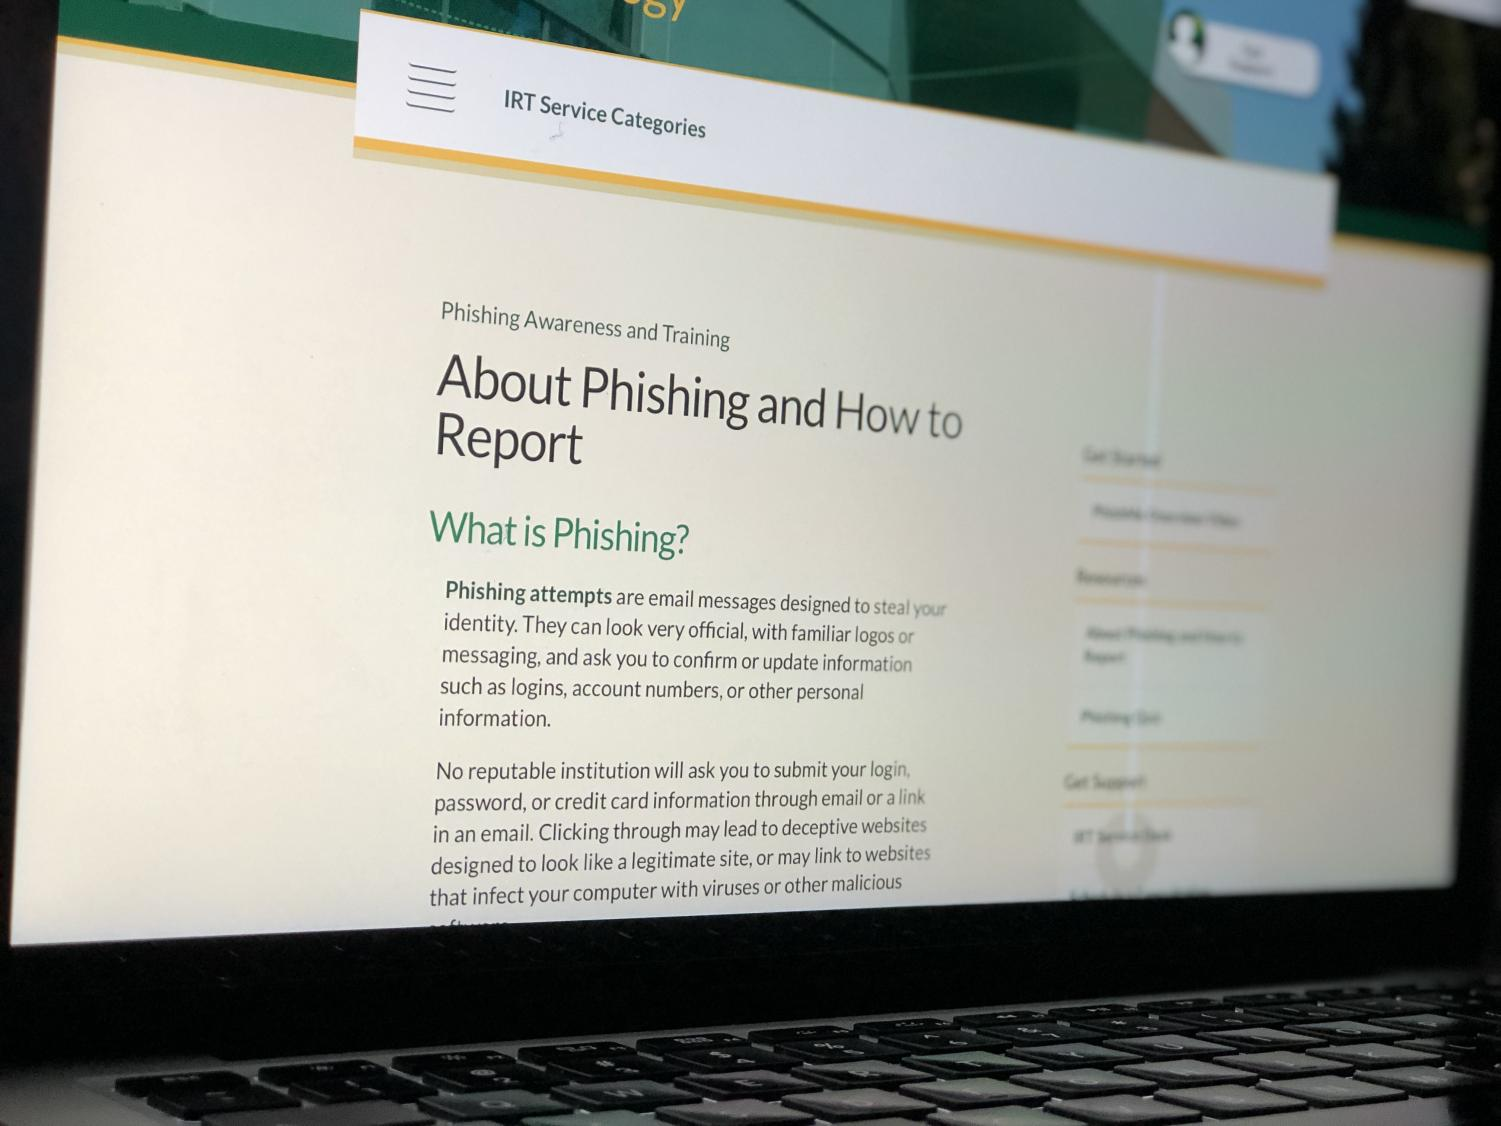 Recent phishing emails have infiltrated the email inboxes of the Sac State community. These emails have included gift card scams, Bitcoin demands and bomb threats.